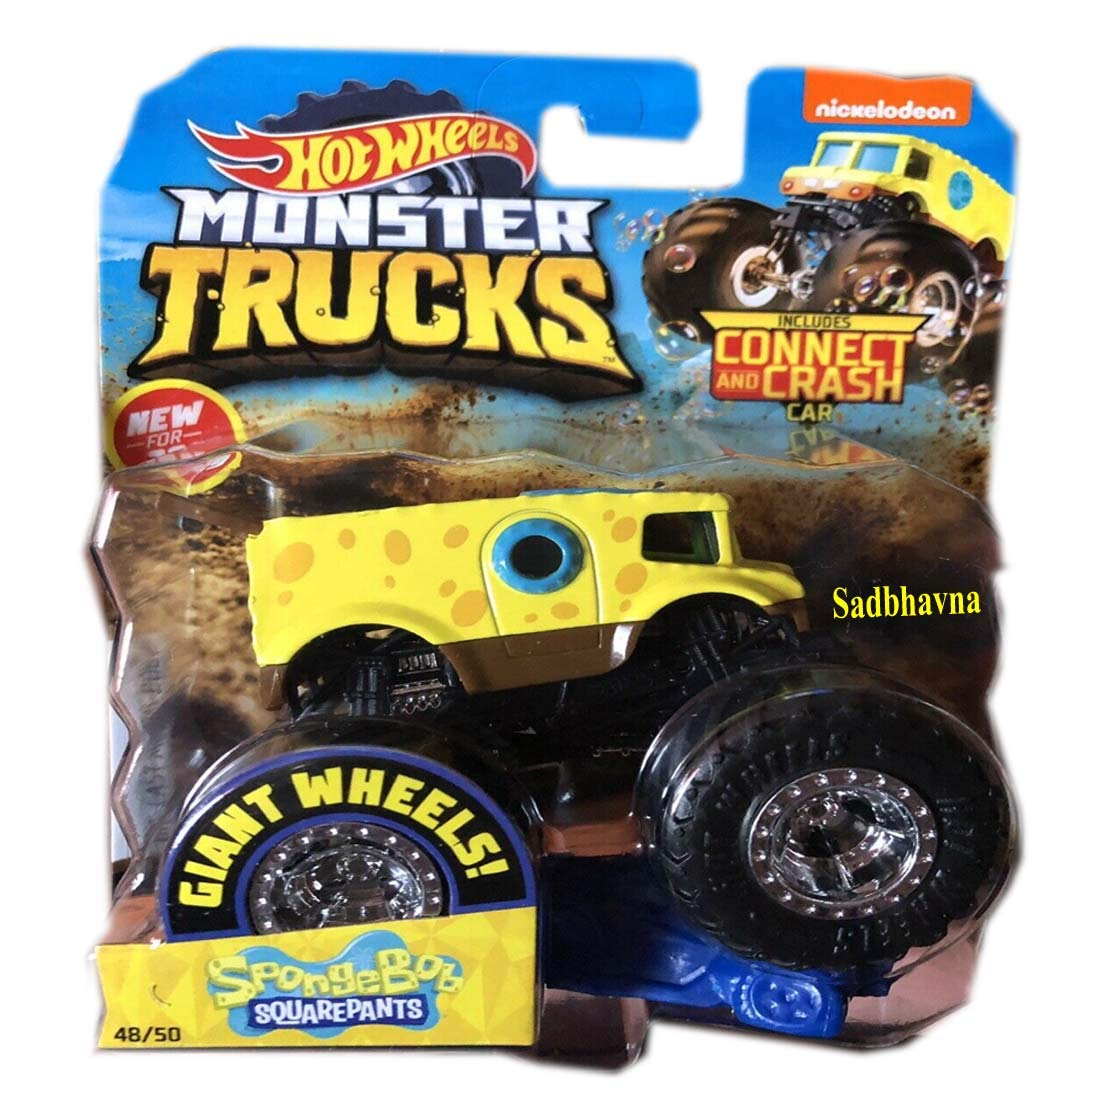 Buy Sadbhavna Hot Wheels Die Cast Metal Body Monster Truck Includes Connect And Crush Car Spongebob Squarepants 48 50 Online At Low Prices In India Amazon In